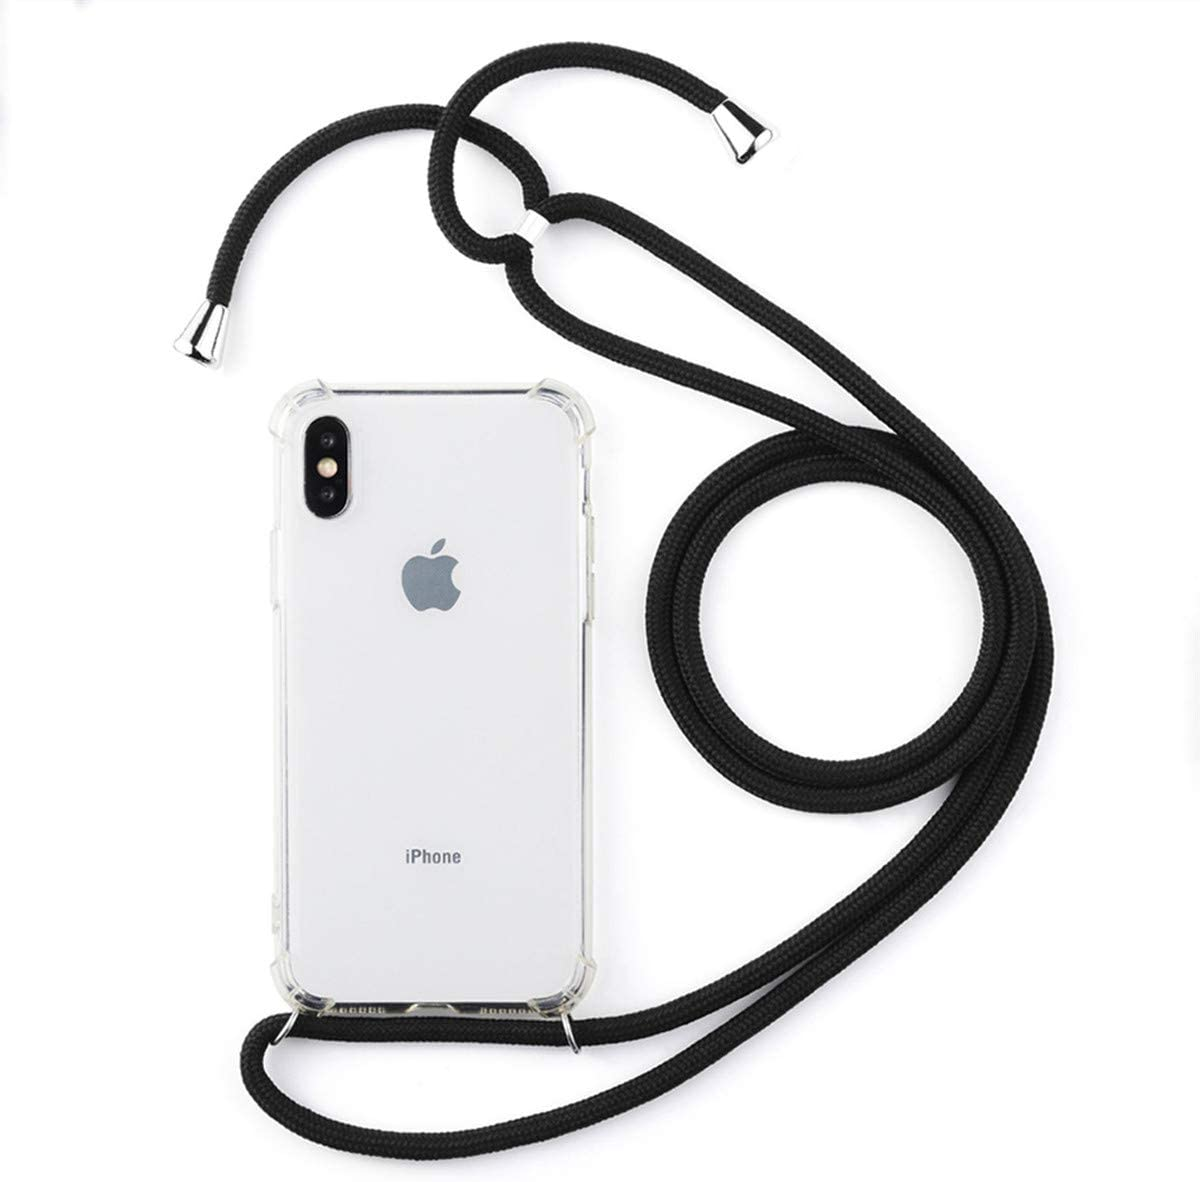 Galaxy S20 Ultra Case, Galaxy S20 Ultra 5G Case,Gift_Source Crystal Clear Soft Gel Rubber Thin Cover Shockproof TPU Bumper Case with Lanyard Strap for Samsung Galaxy S20 Ultra/S20 Ultra 5G 6.9